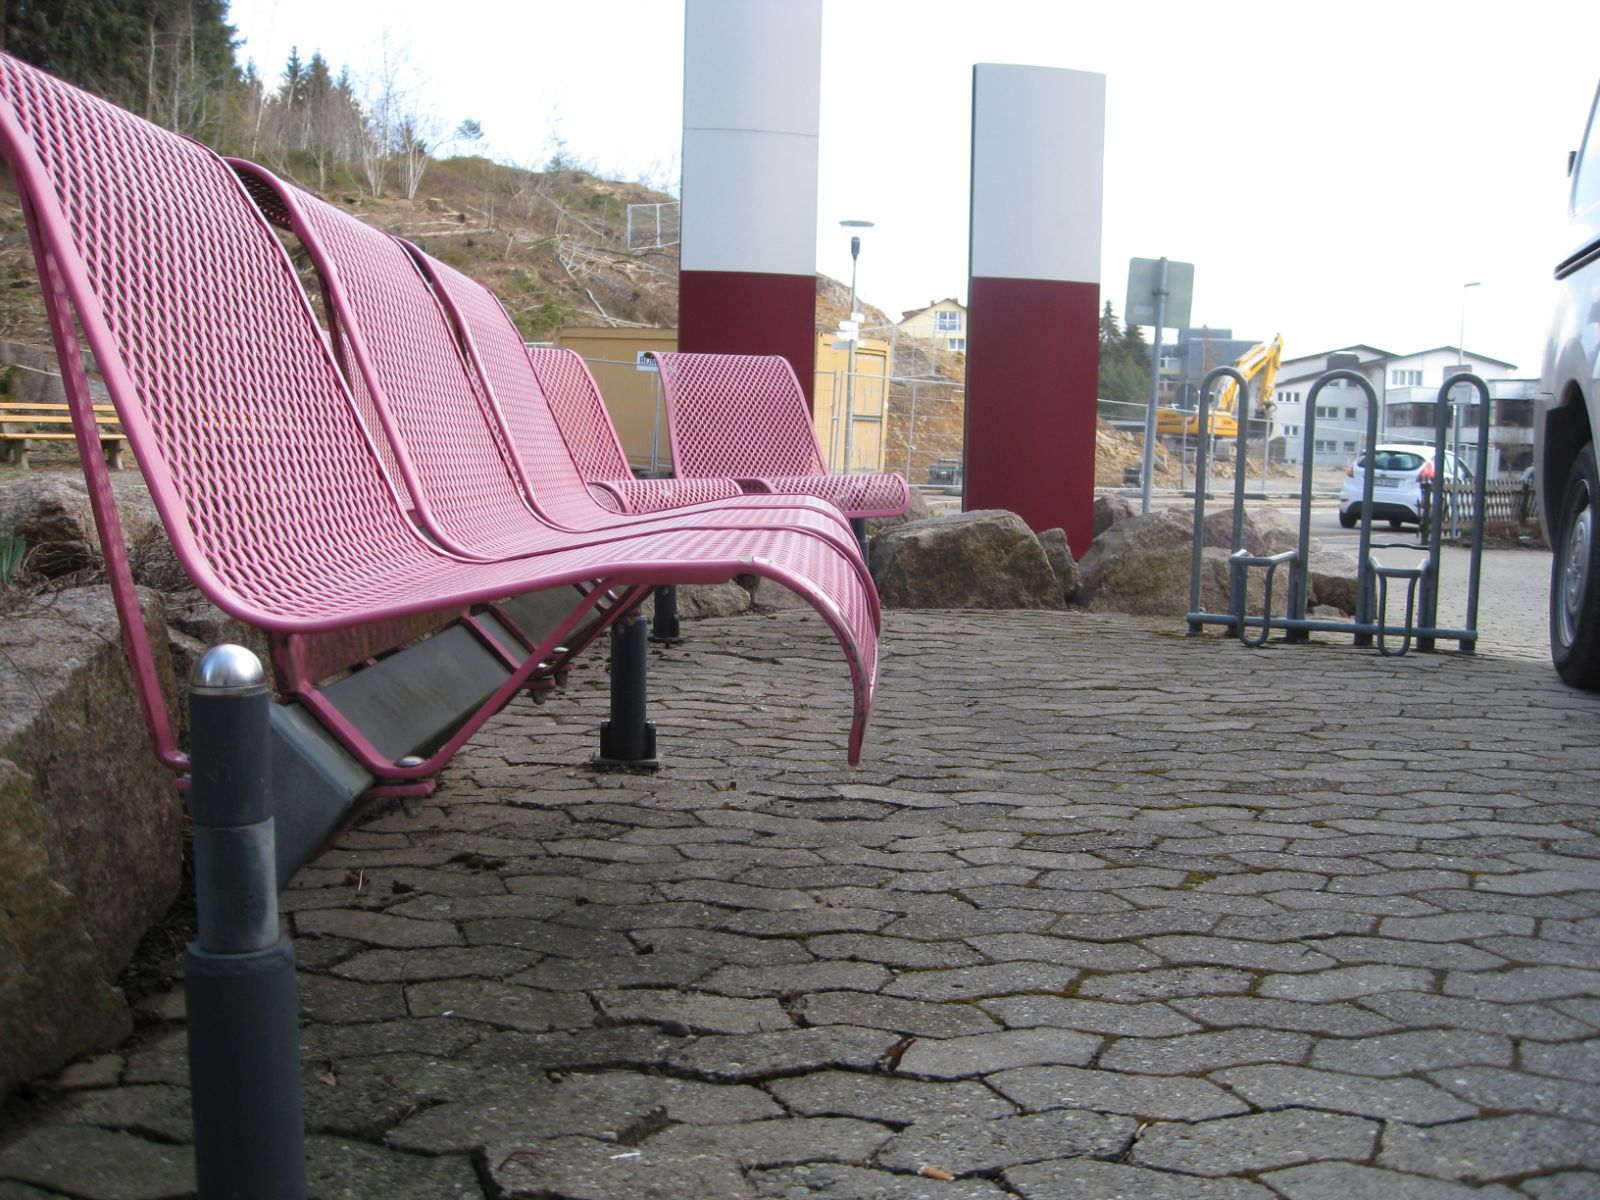 euroform w - urban furniture - park bench metal - seating - Domino - modular bench